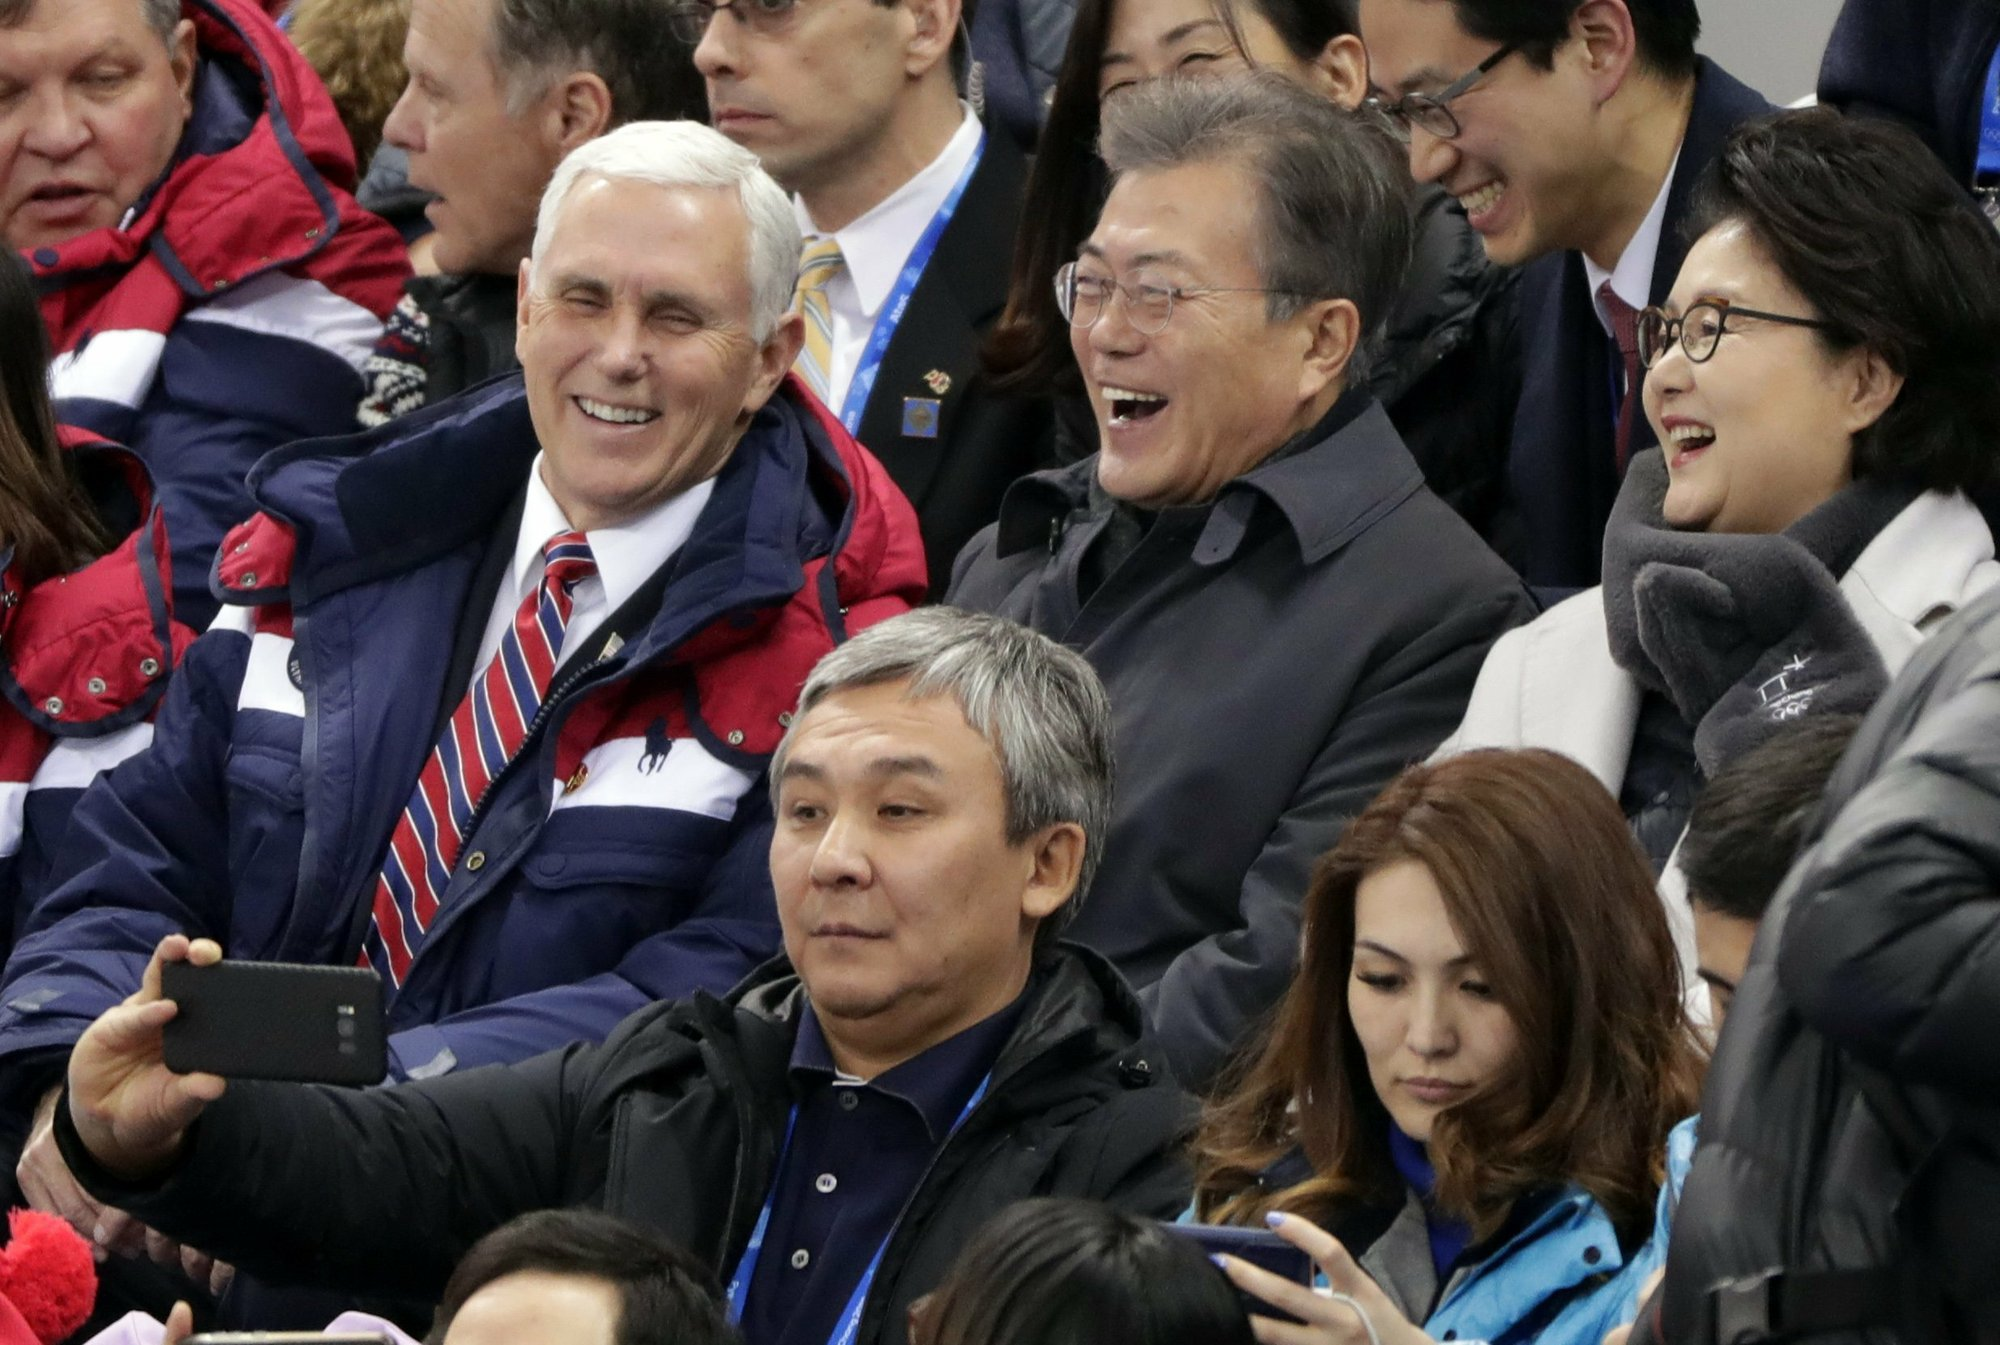 After S. Korea visit, Pence insists 'no daylight' on North